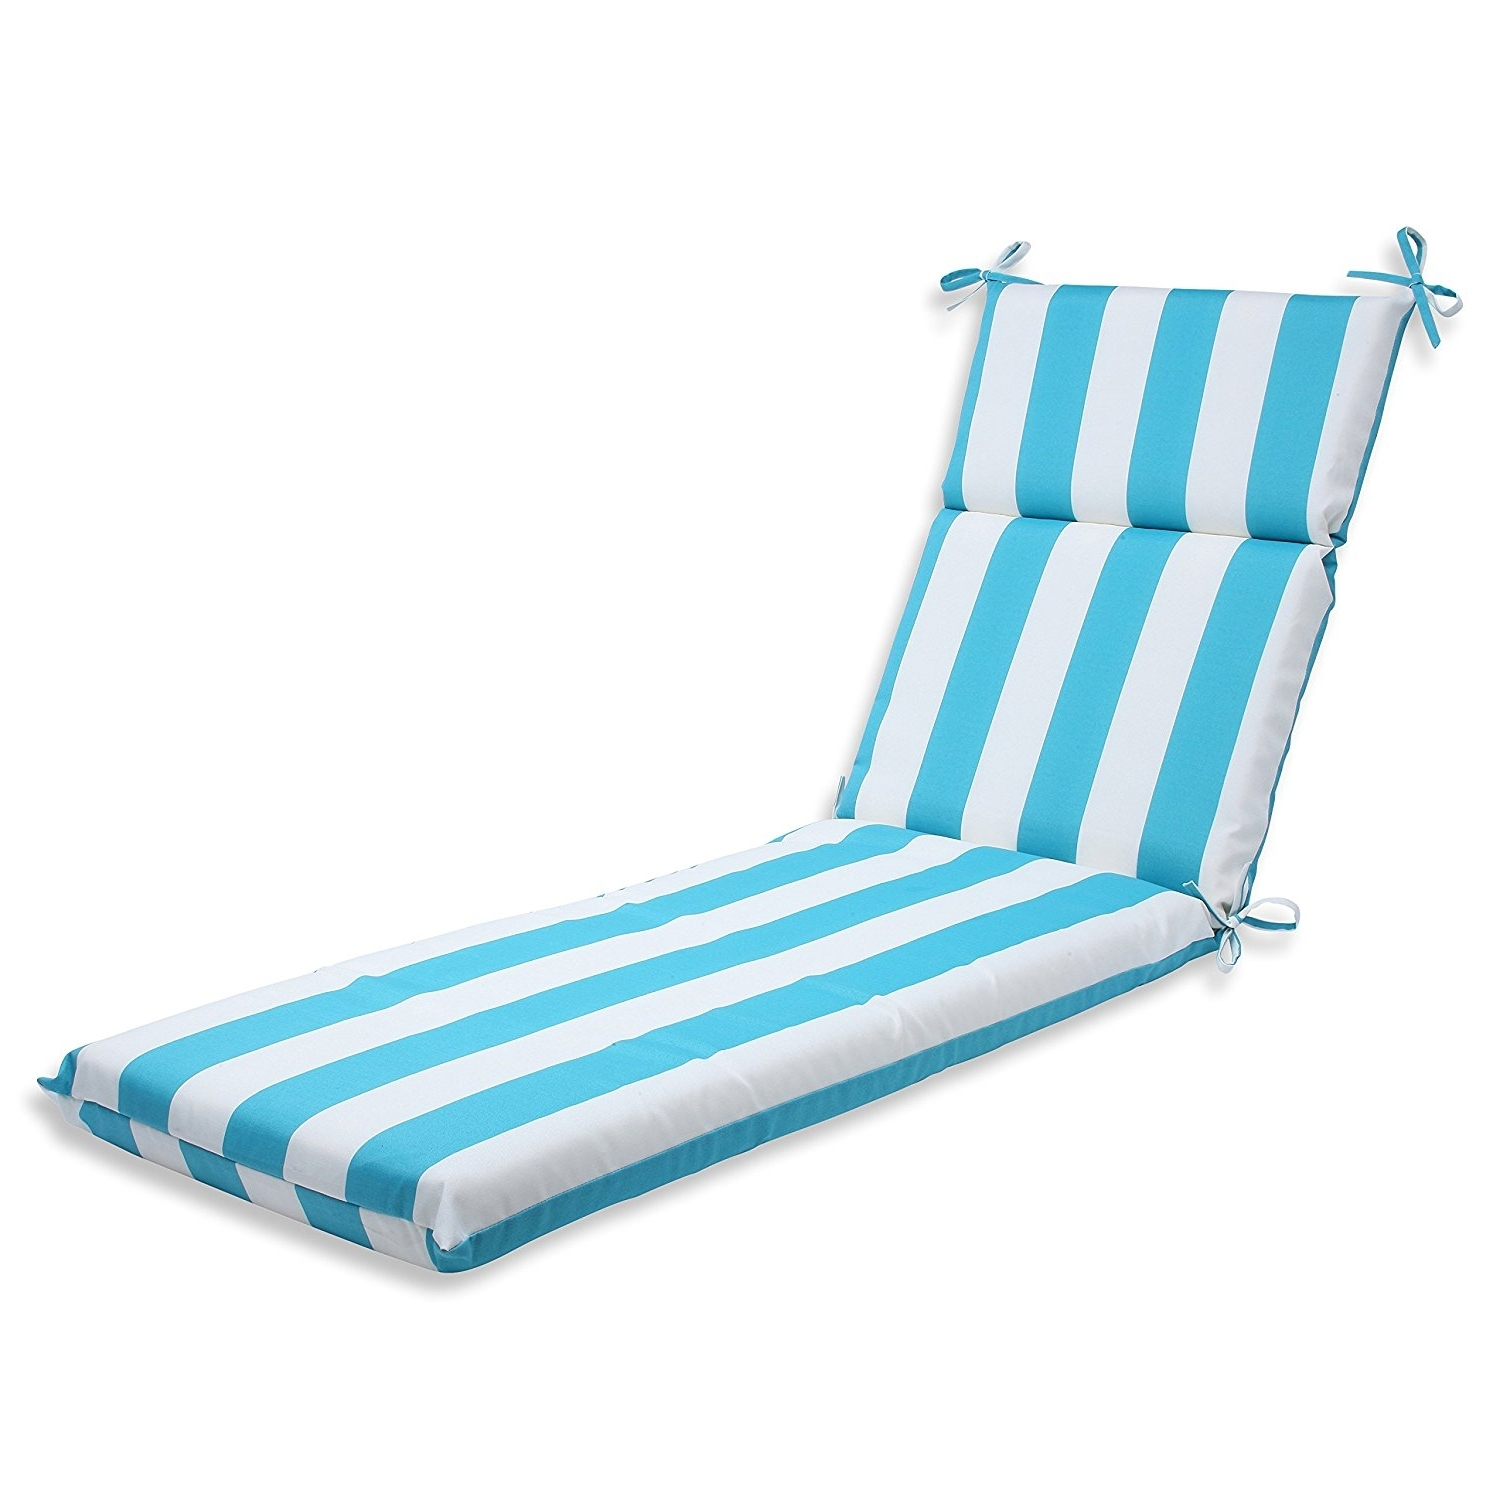 Preferred Outdoor Chaise Lounge Cushions Within Amazon: Pillow Perfect Outdoor Cabana Stripe Chaise Lounge (View 13 of 15)